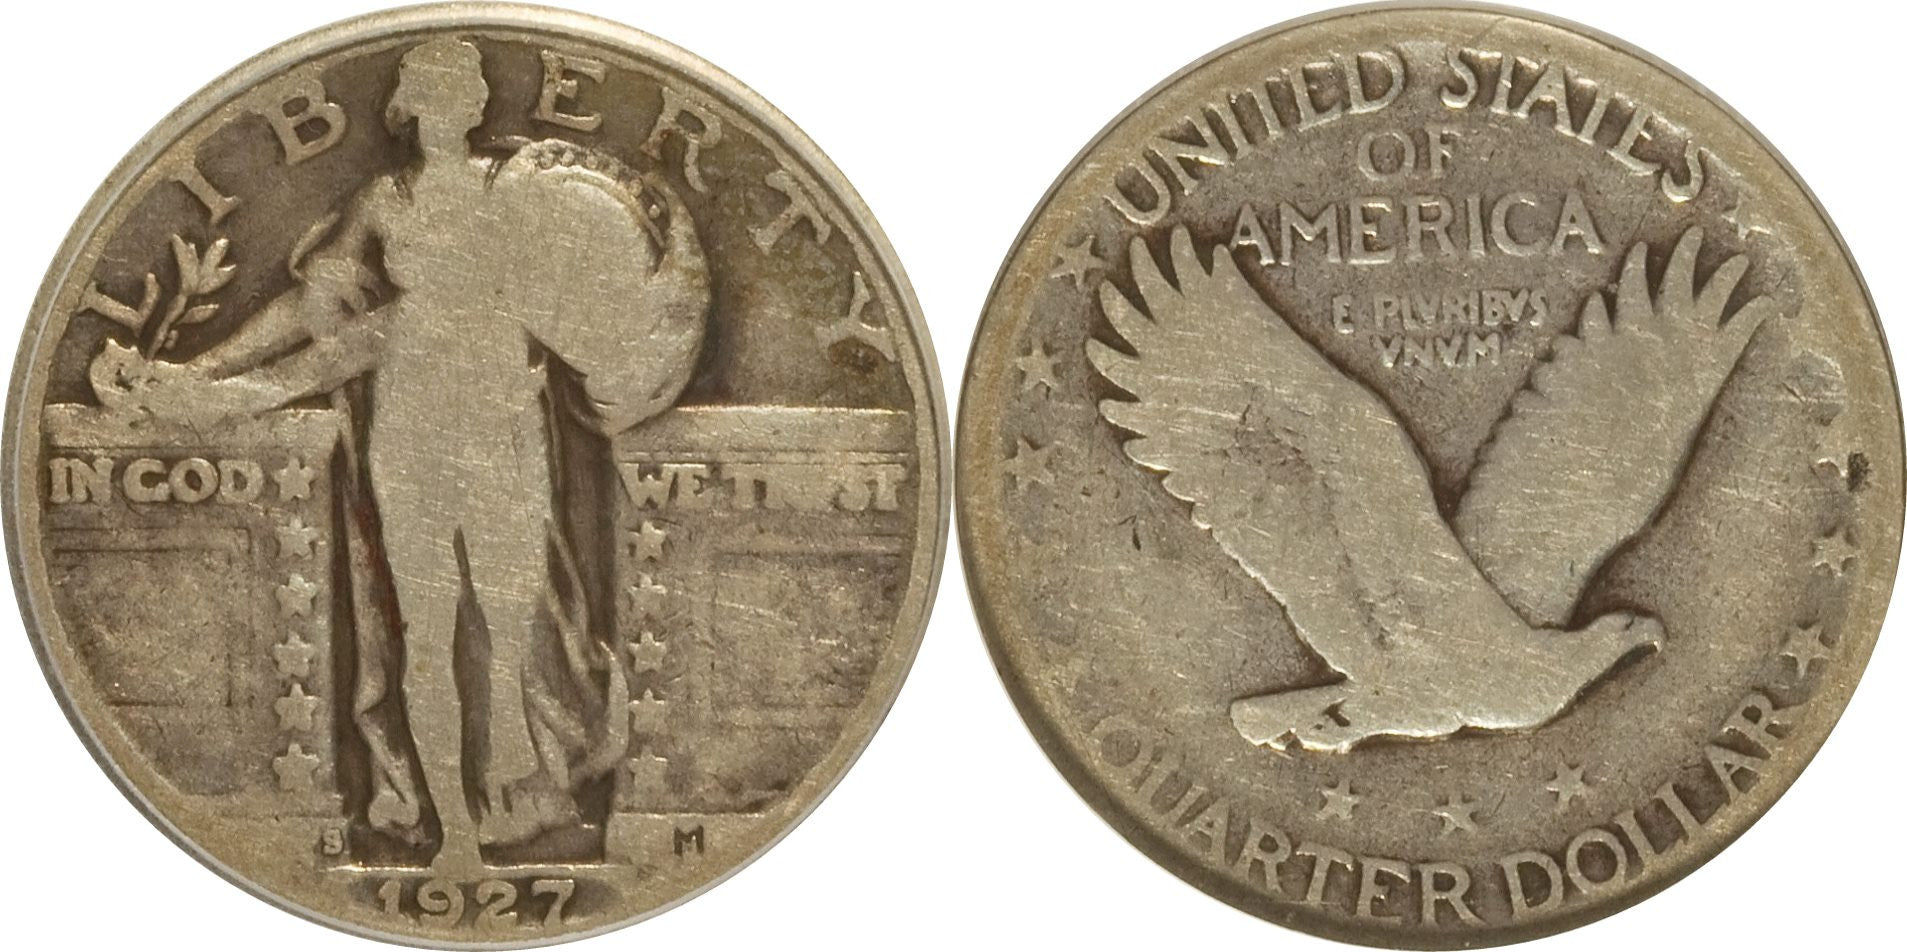 Standing Liberty Quarter Good Condition